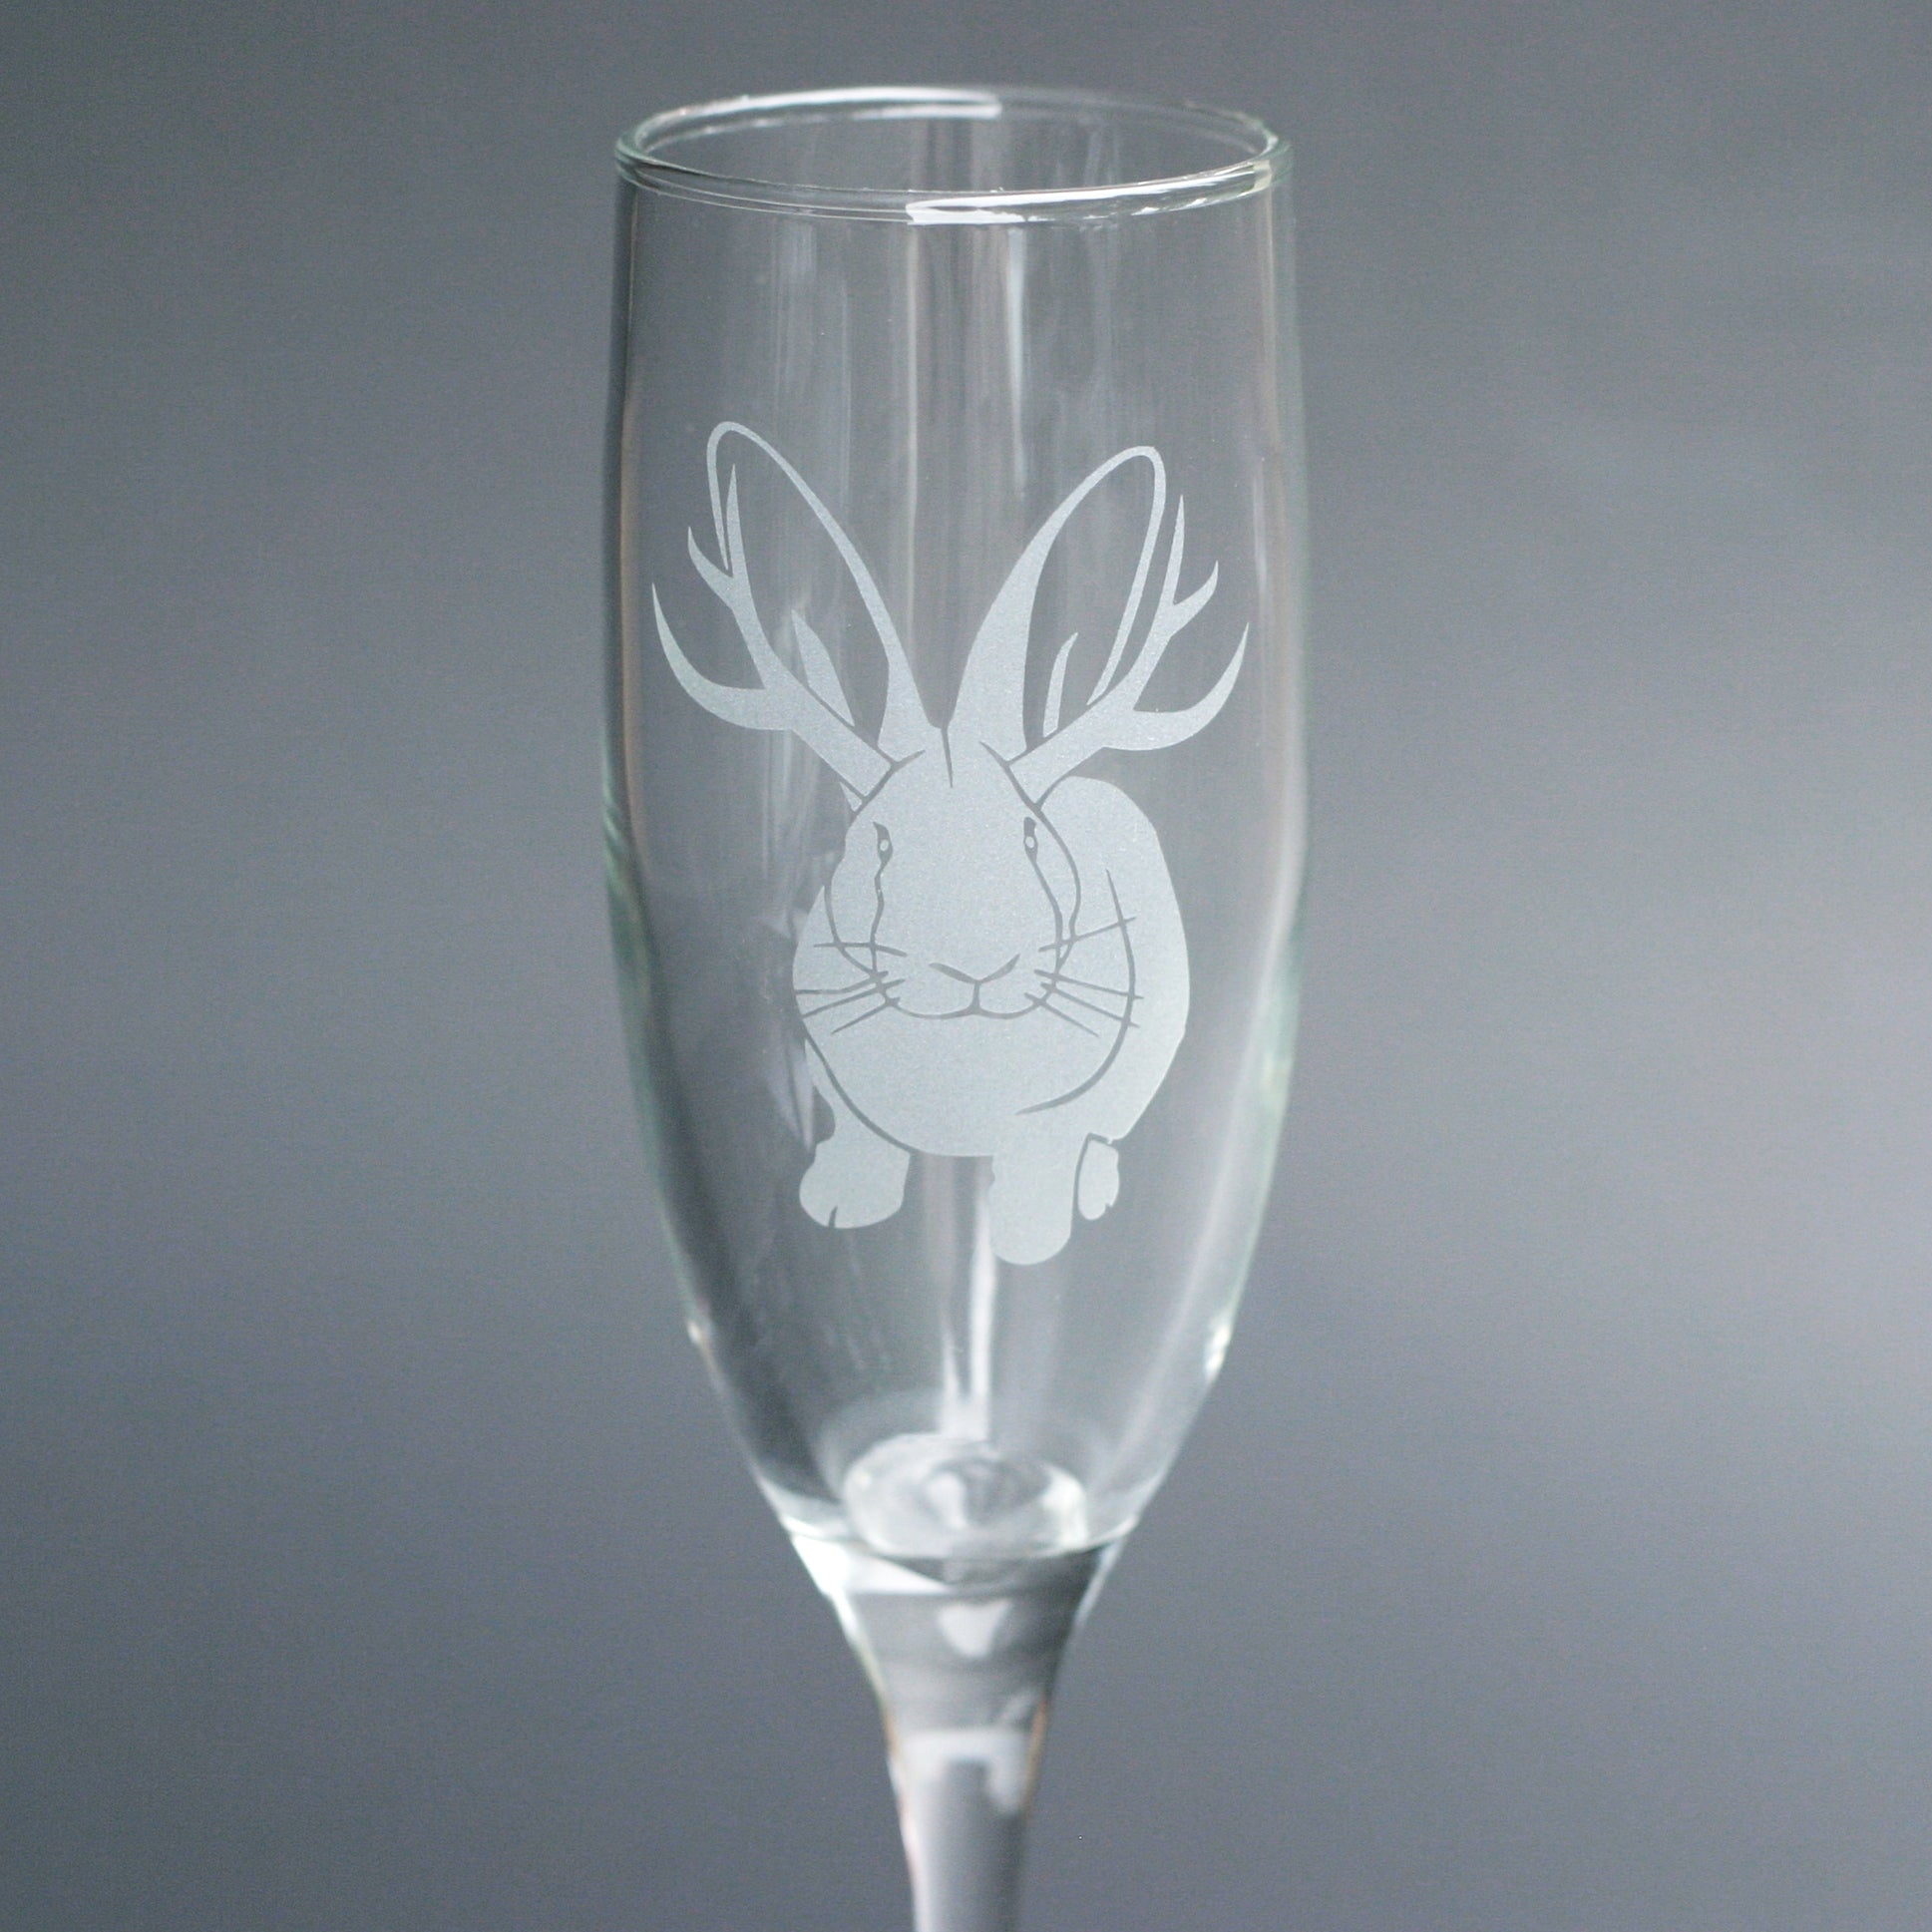 Jackalope bunny champagne flute by Bread and Badger